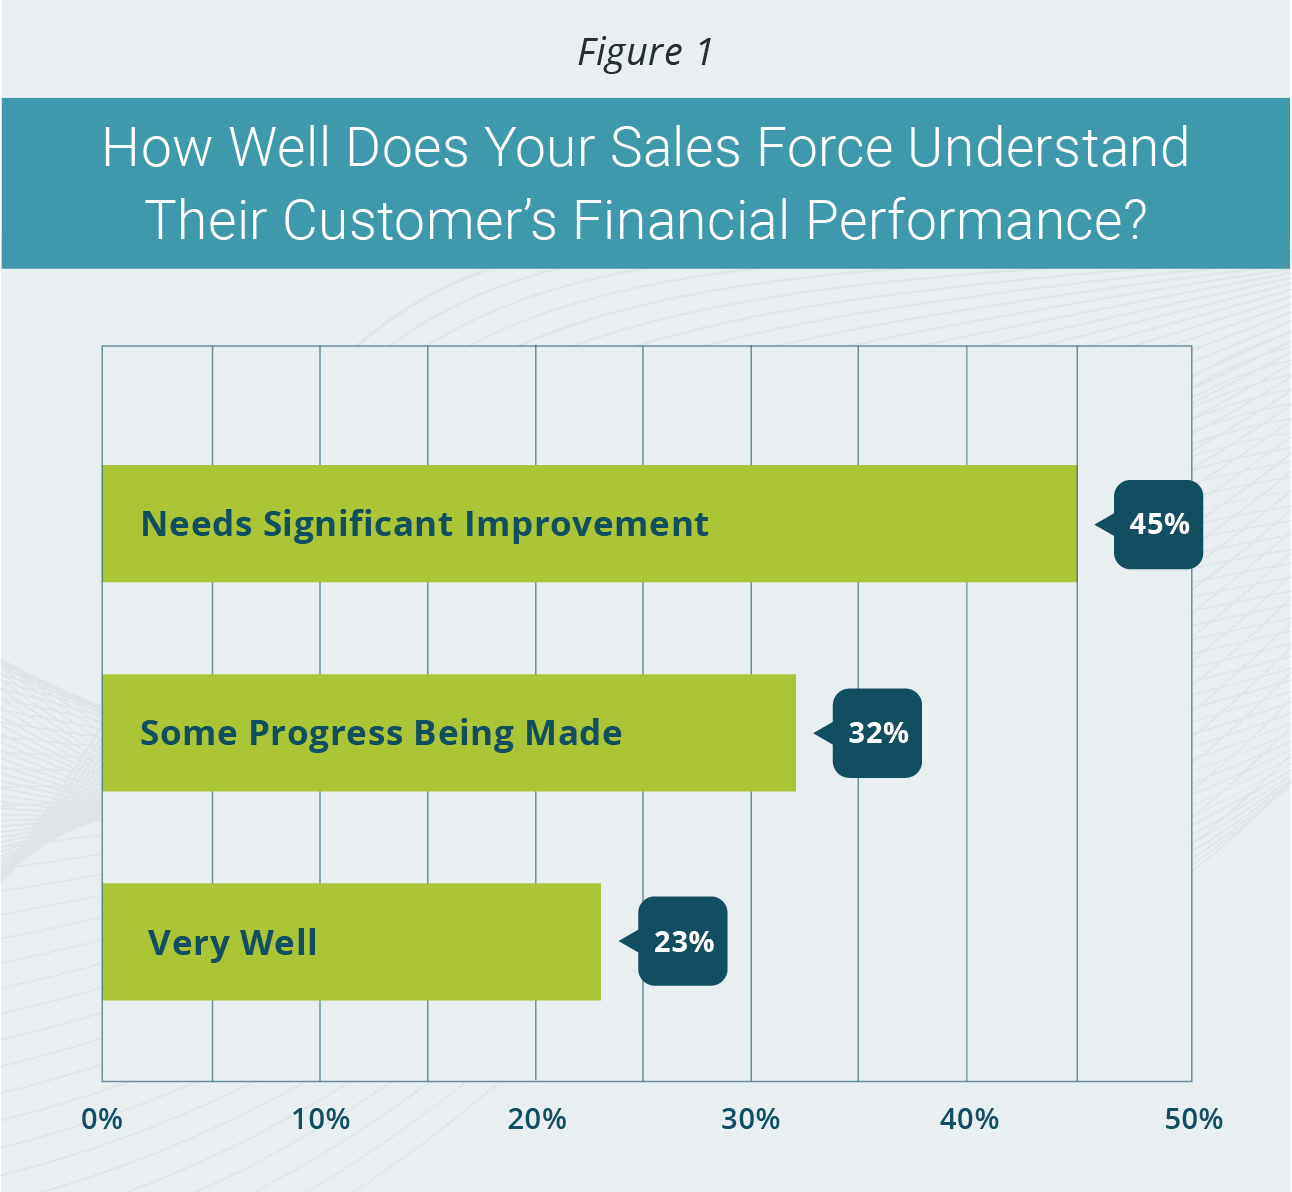 Developing Client Financial Insights